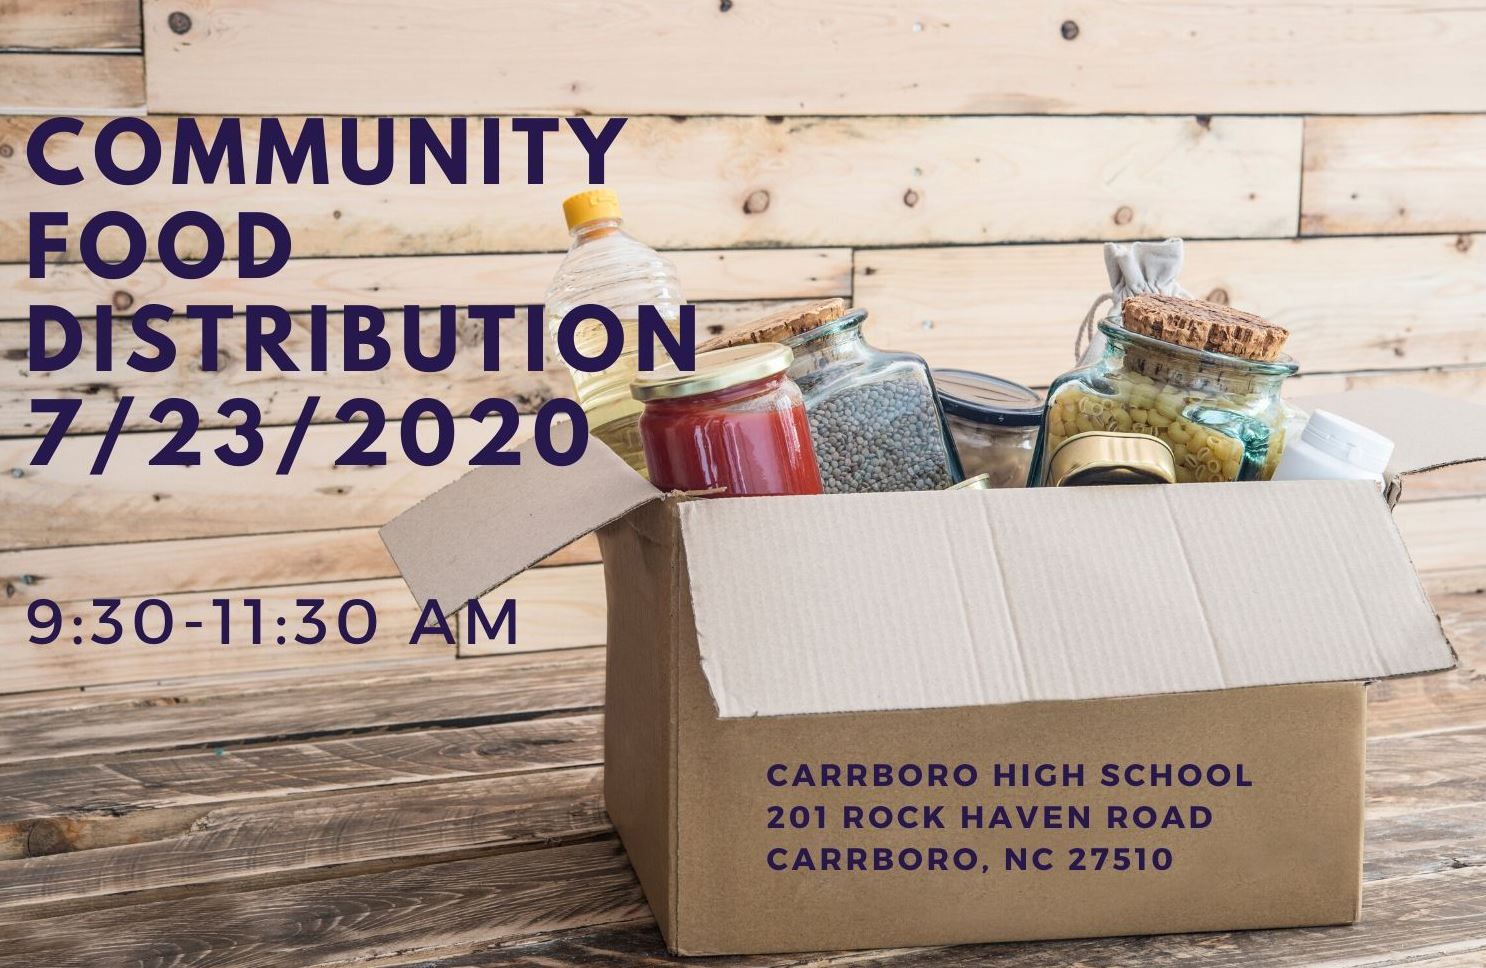 Community Food Distribution 7-23-2020 Flyer